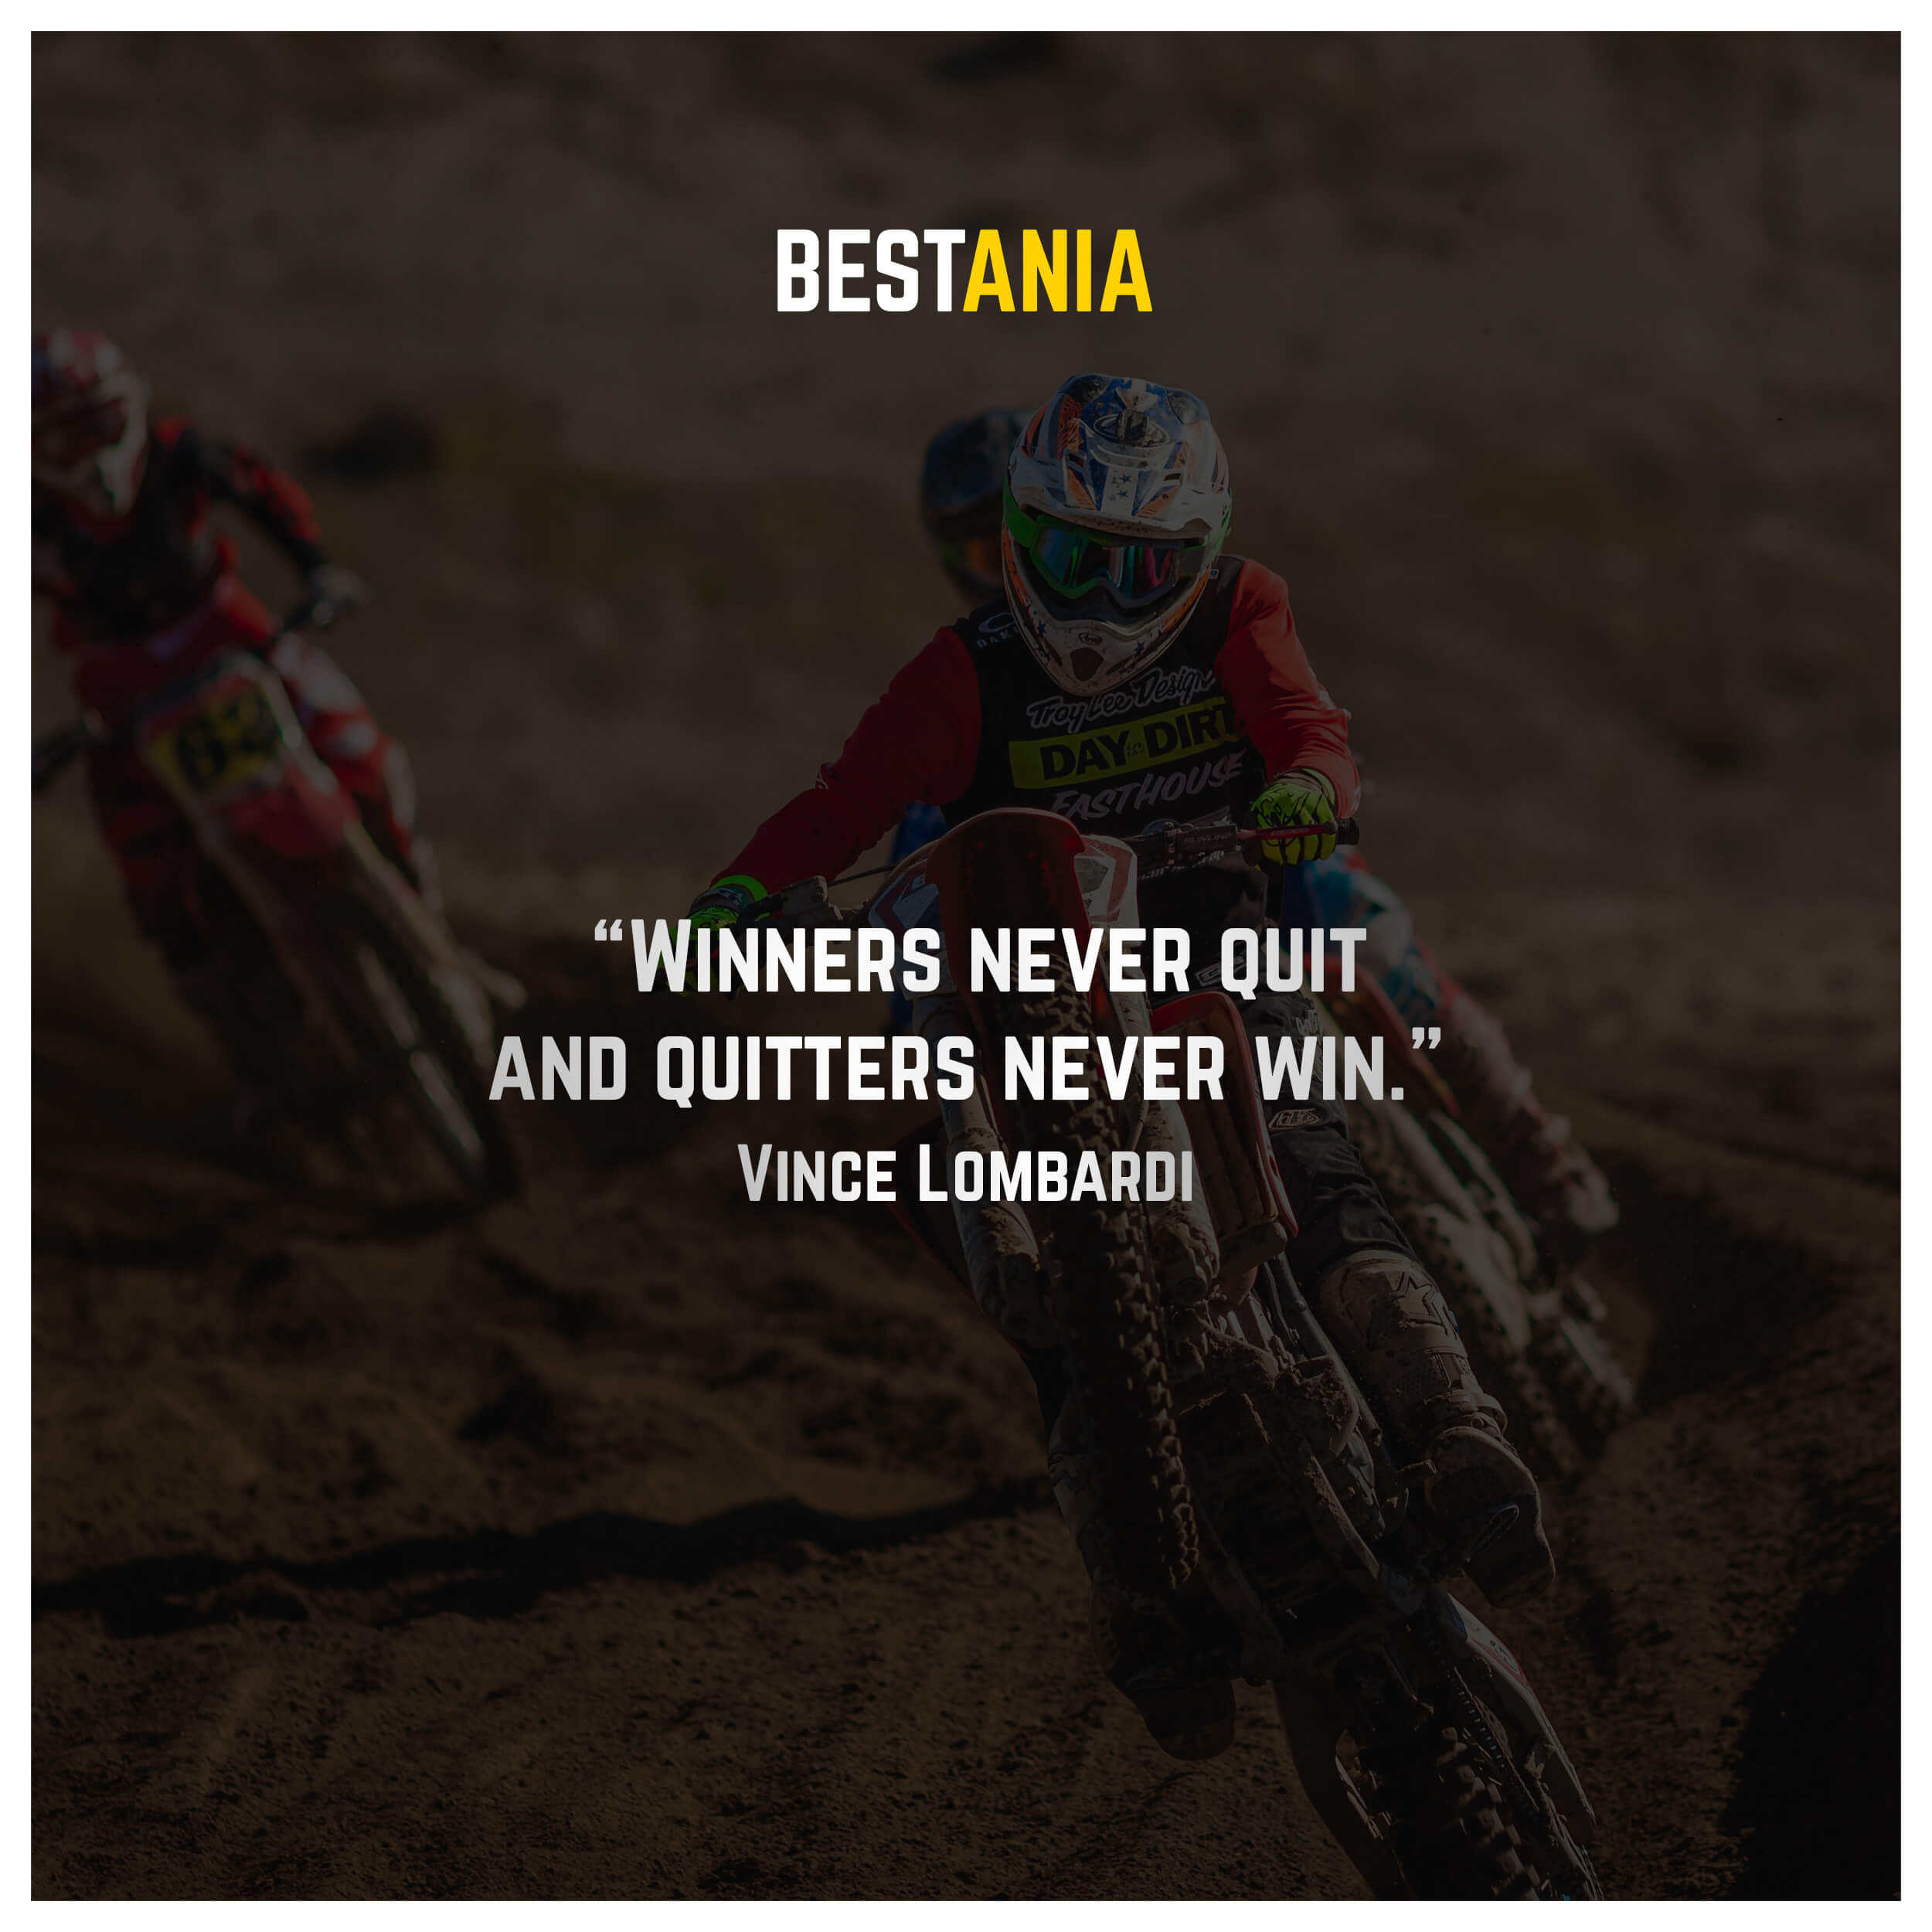 """Winners never quit and quitters never win."" – Vince Lombardi"